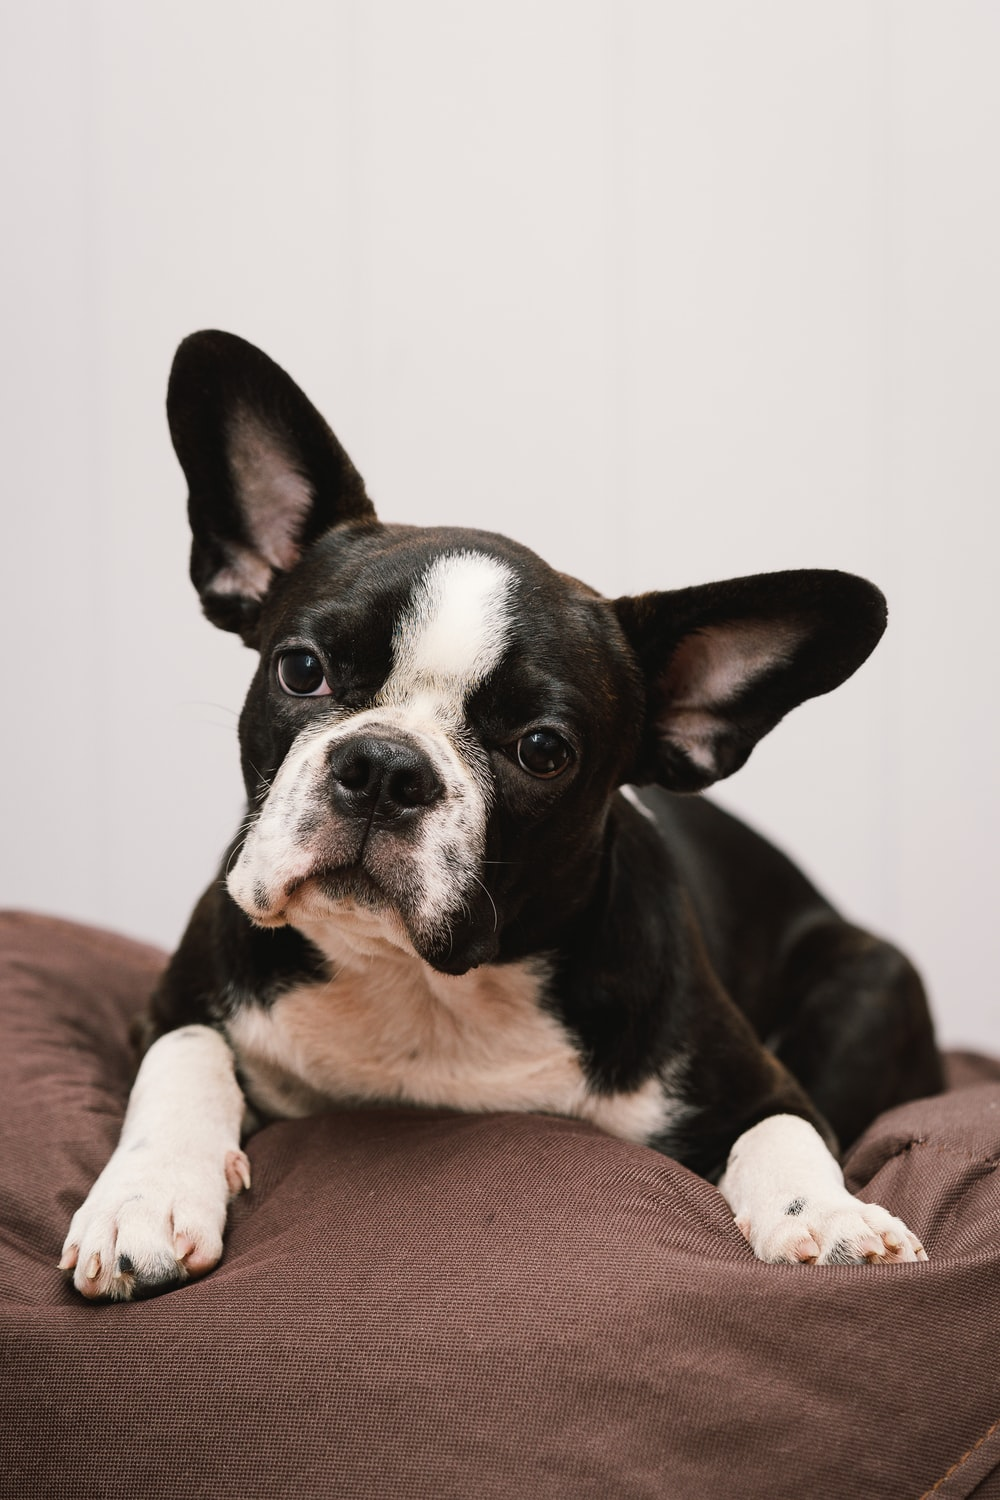 black and white short coated dog lying on brown textile